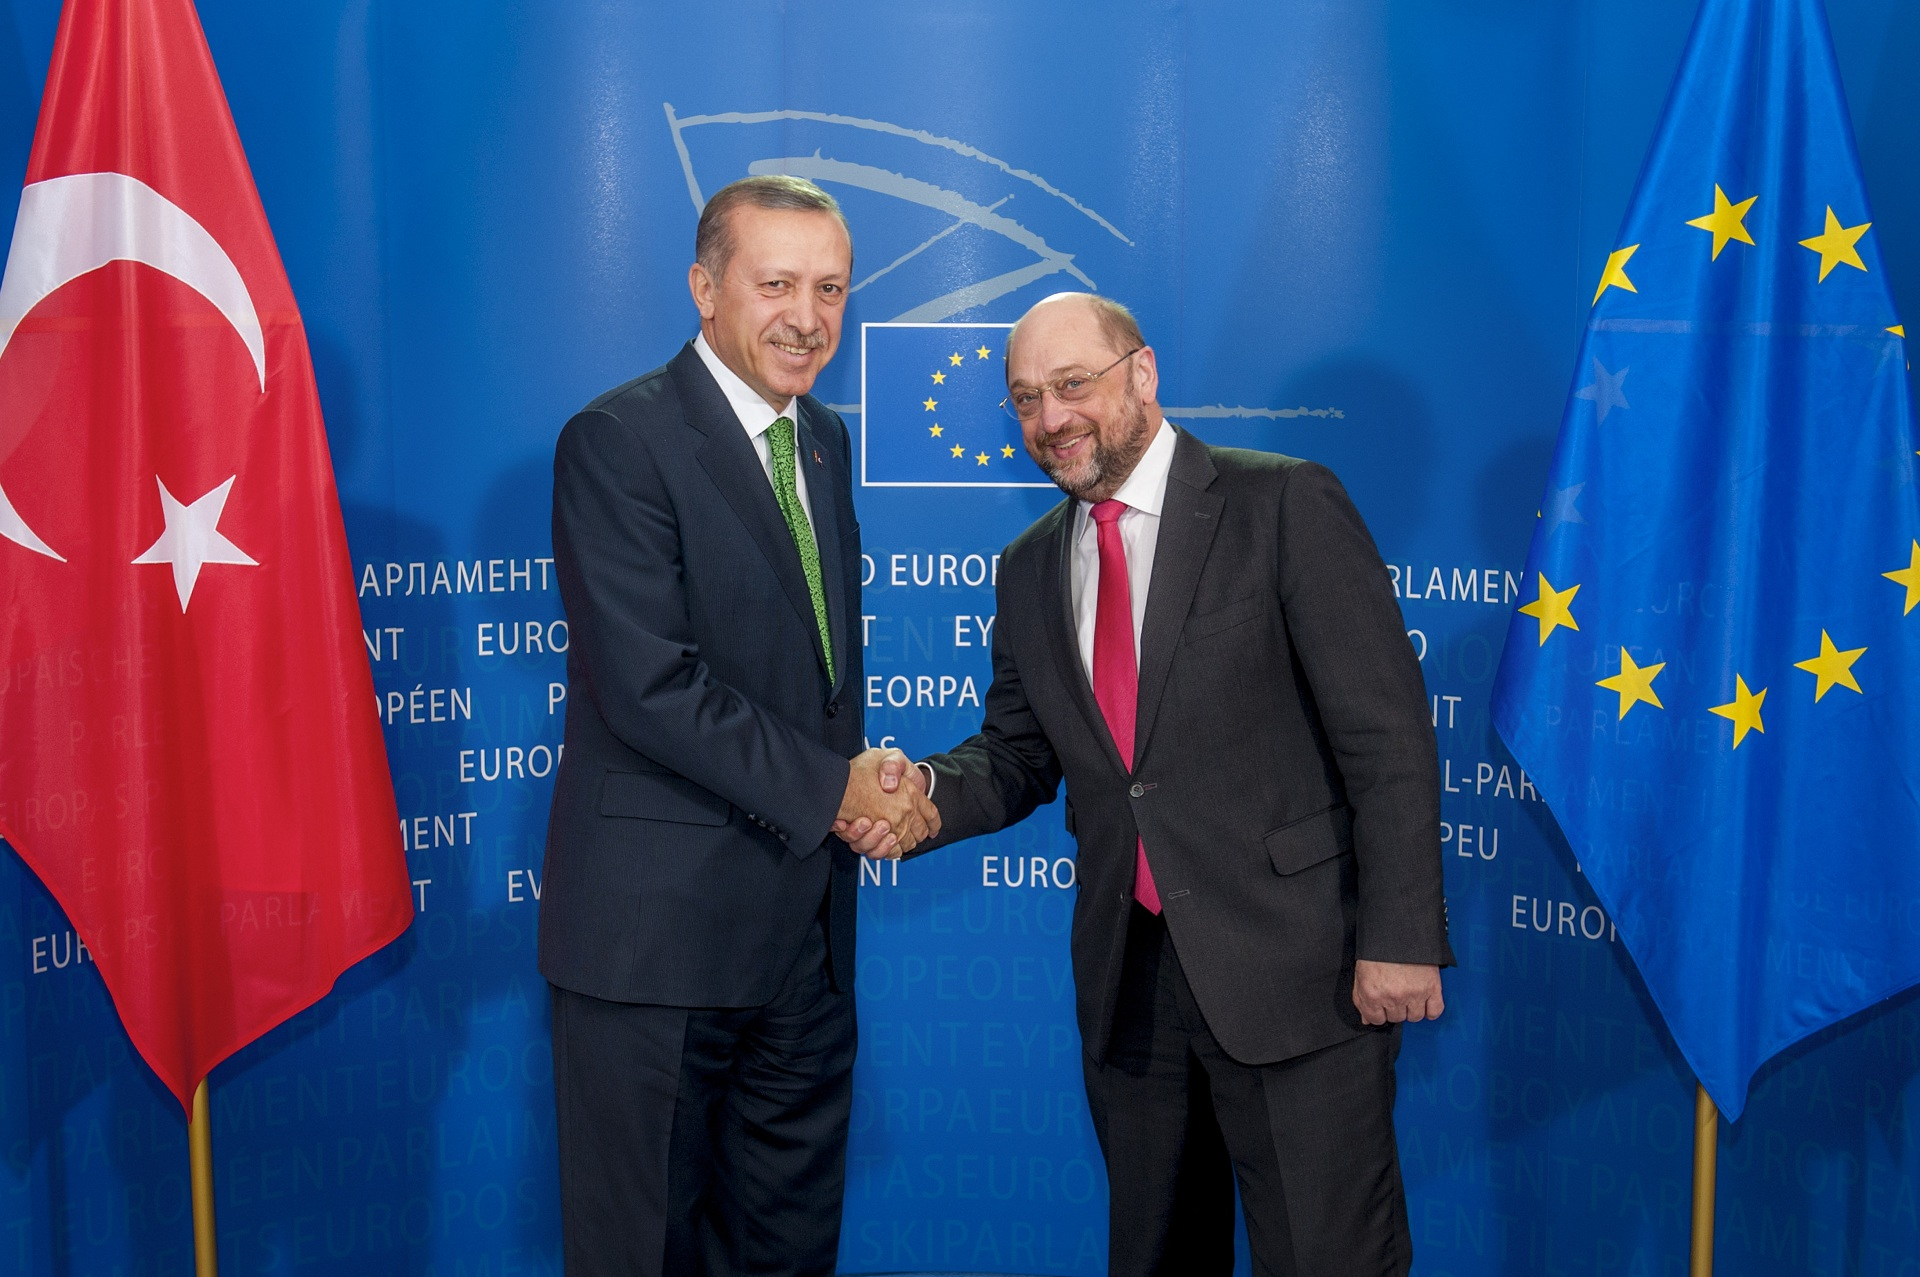 Erdogan in Brussels with migration on the table with the EU